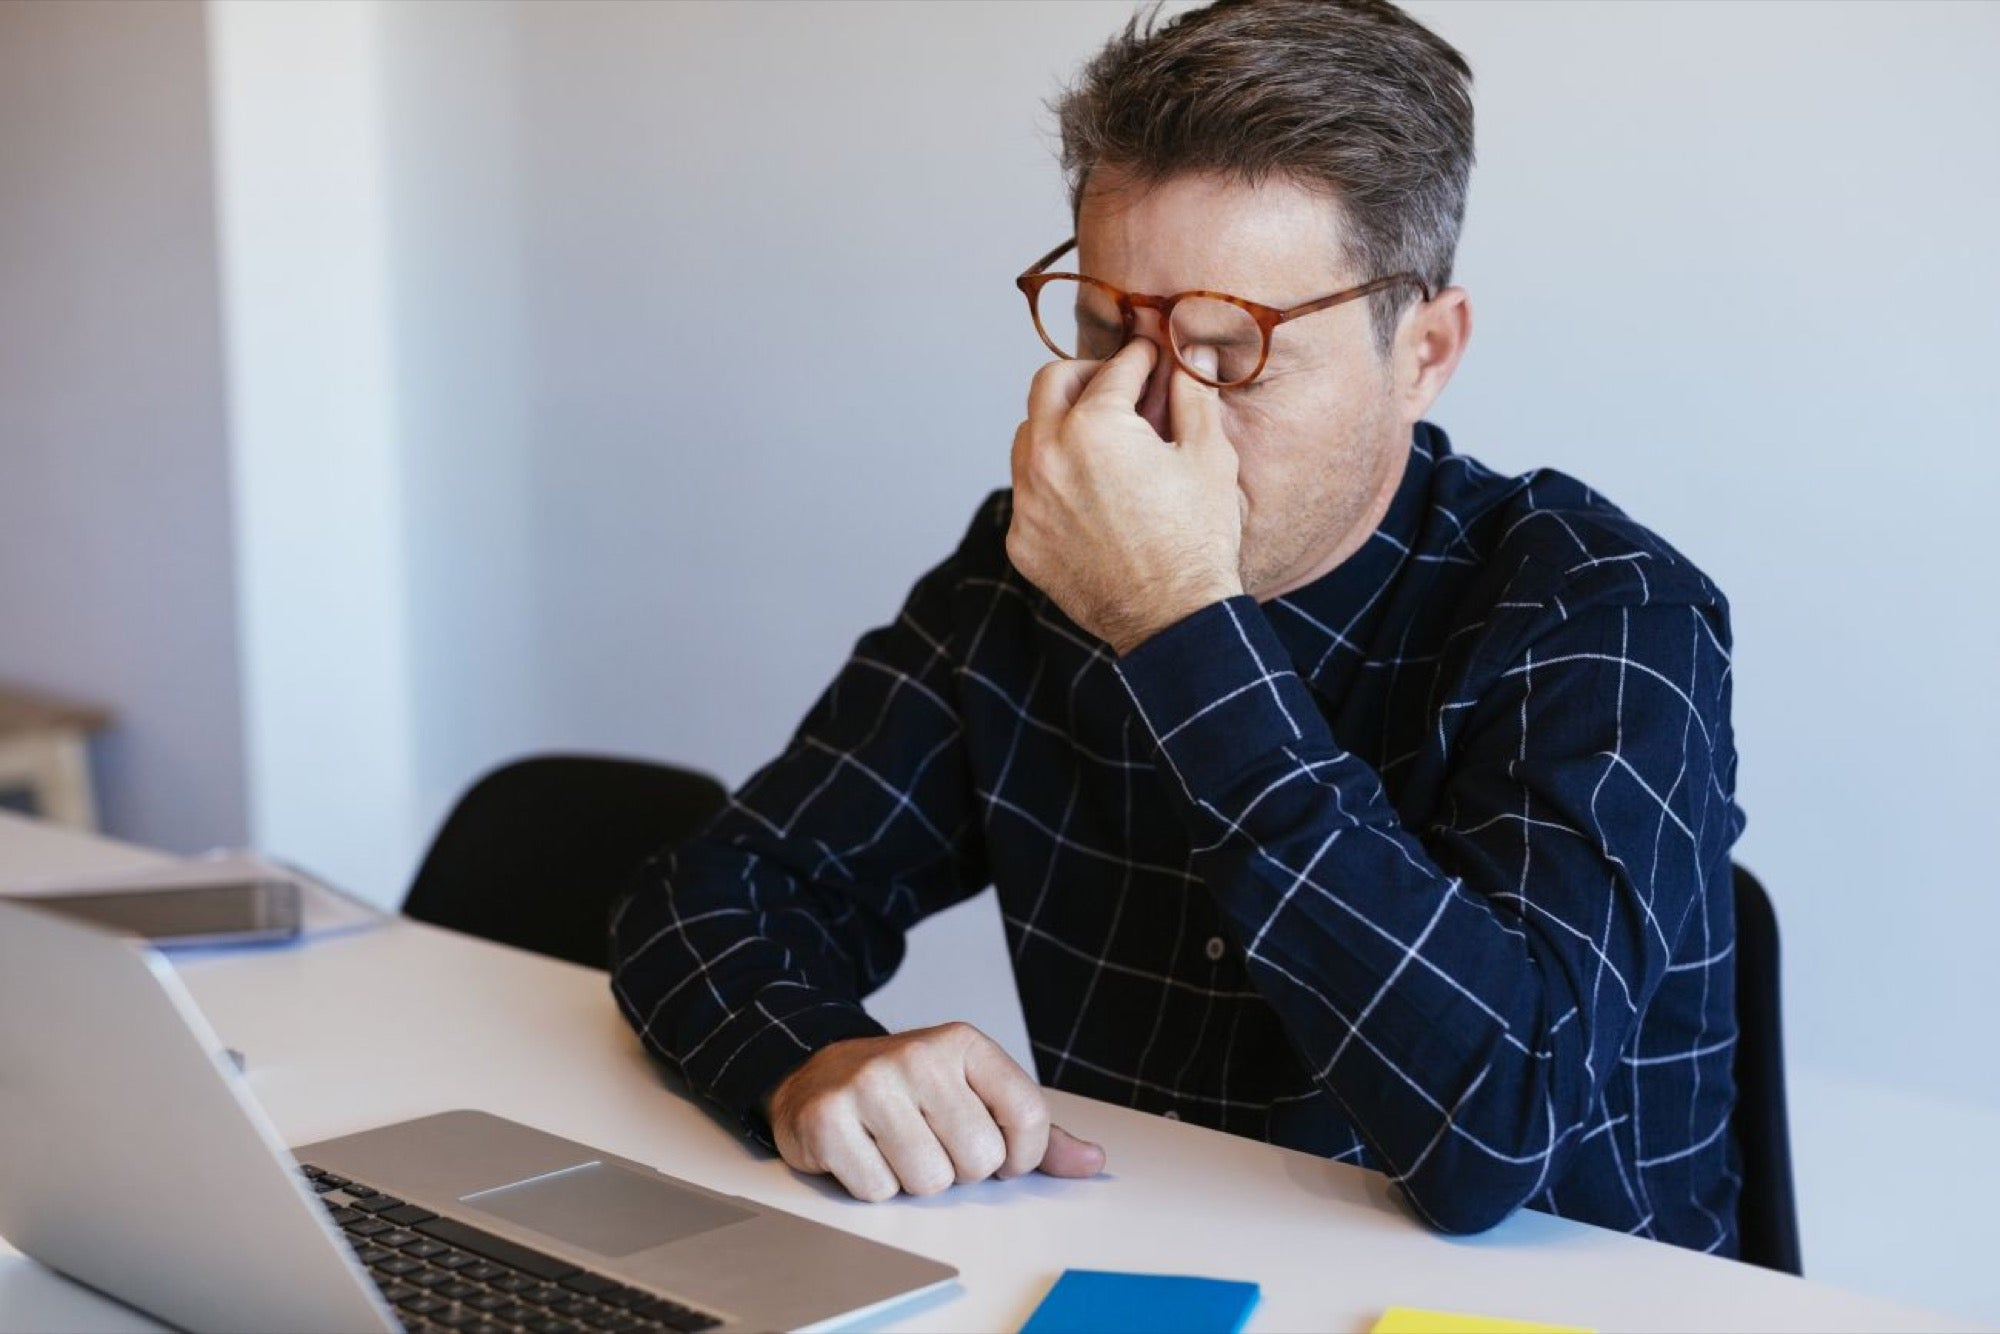 Habits that could Sabotage your Vision